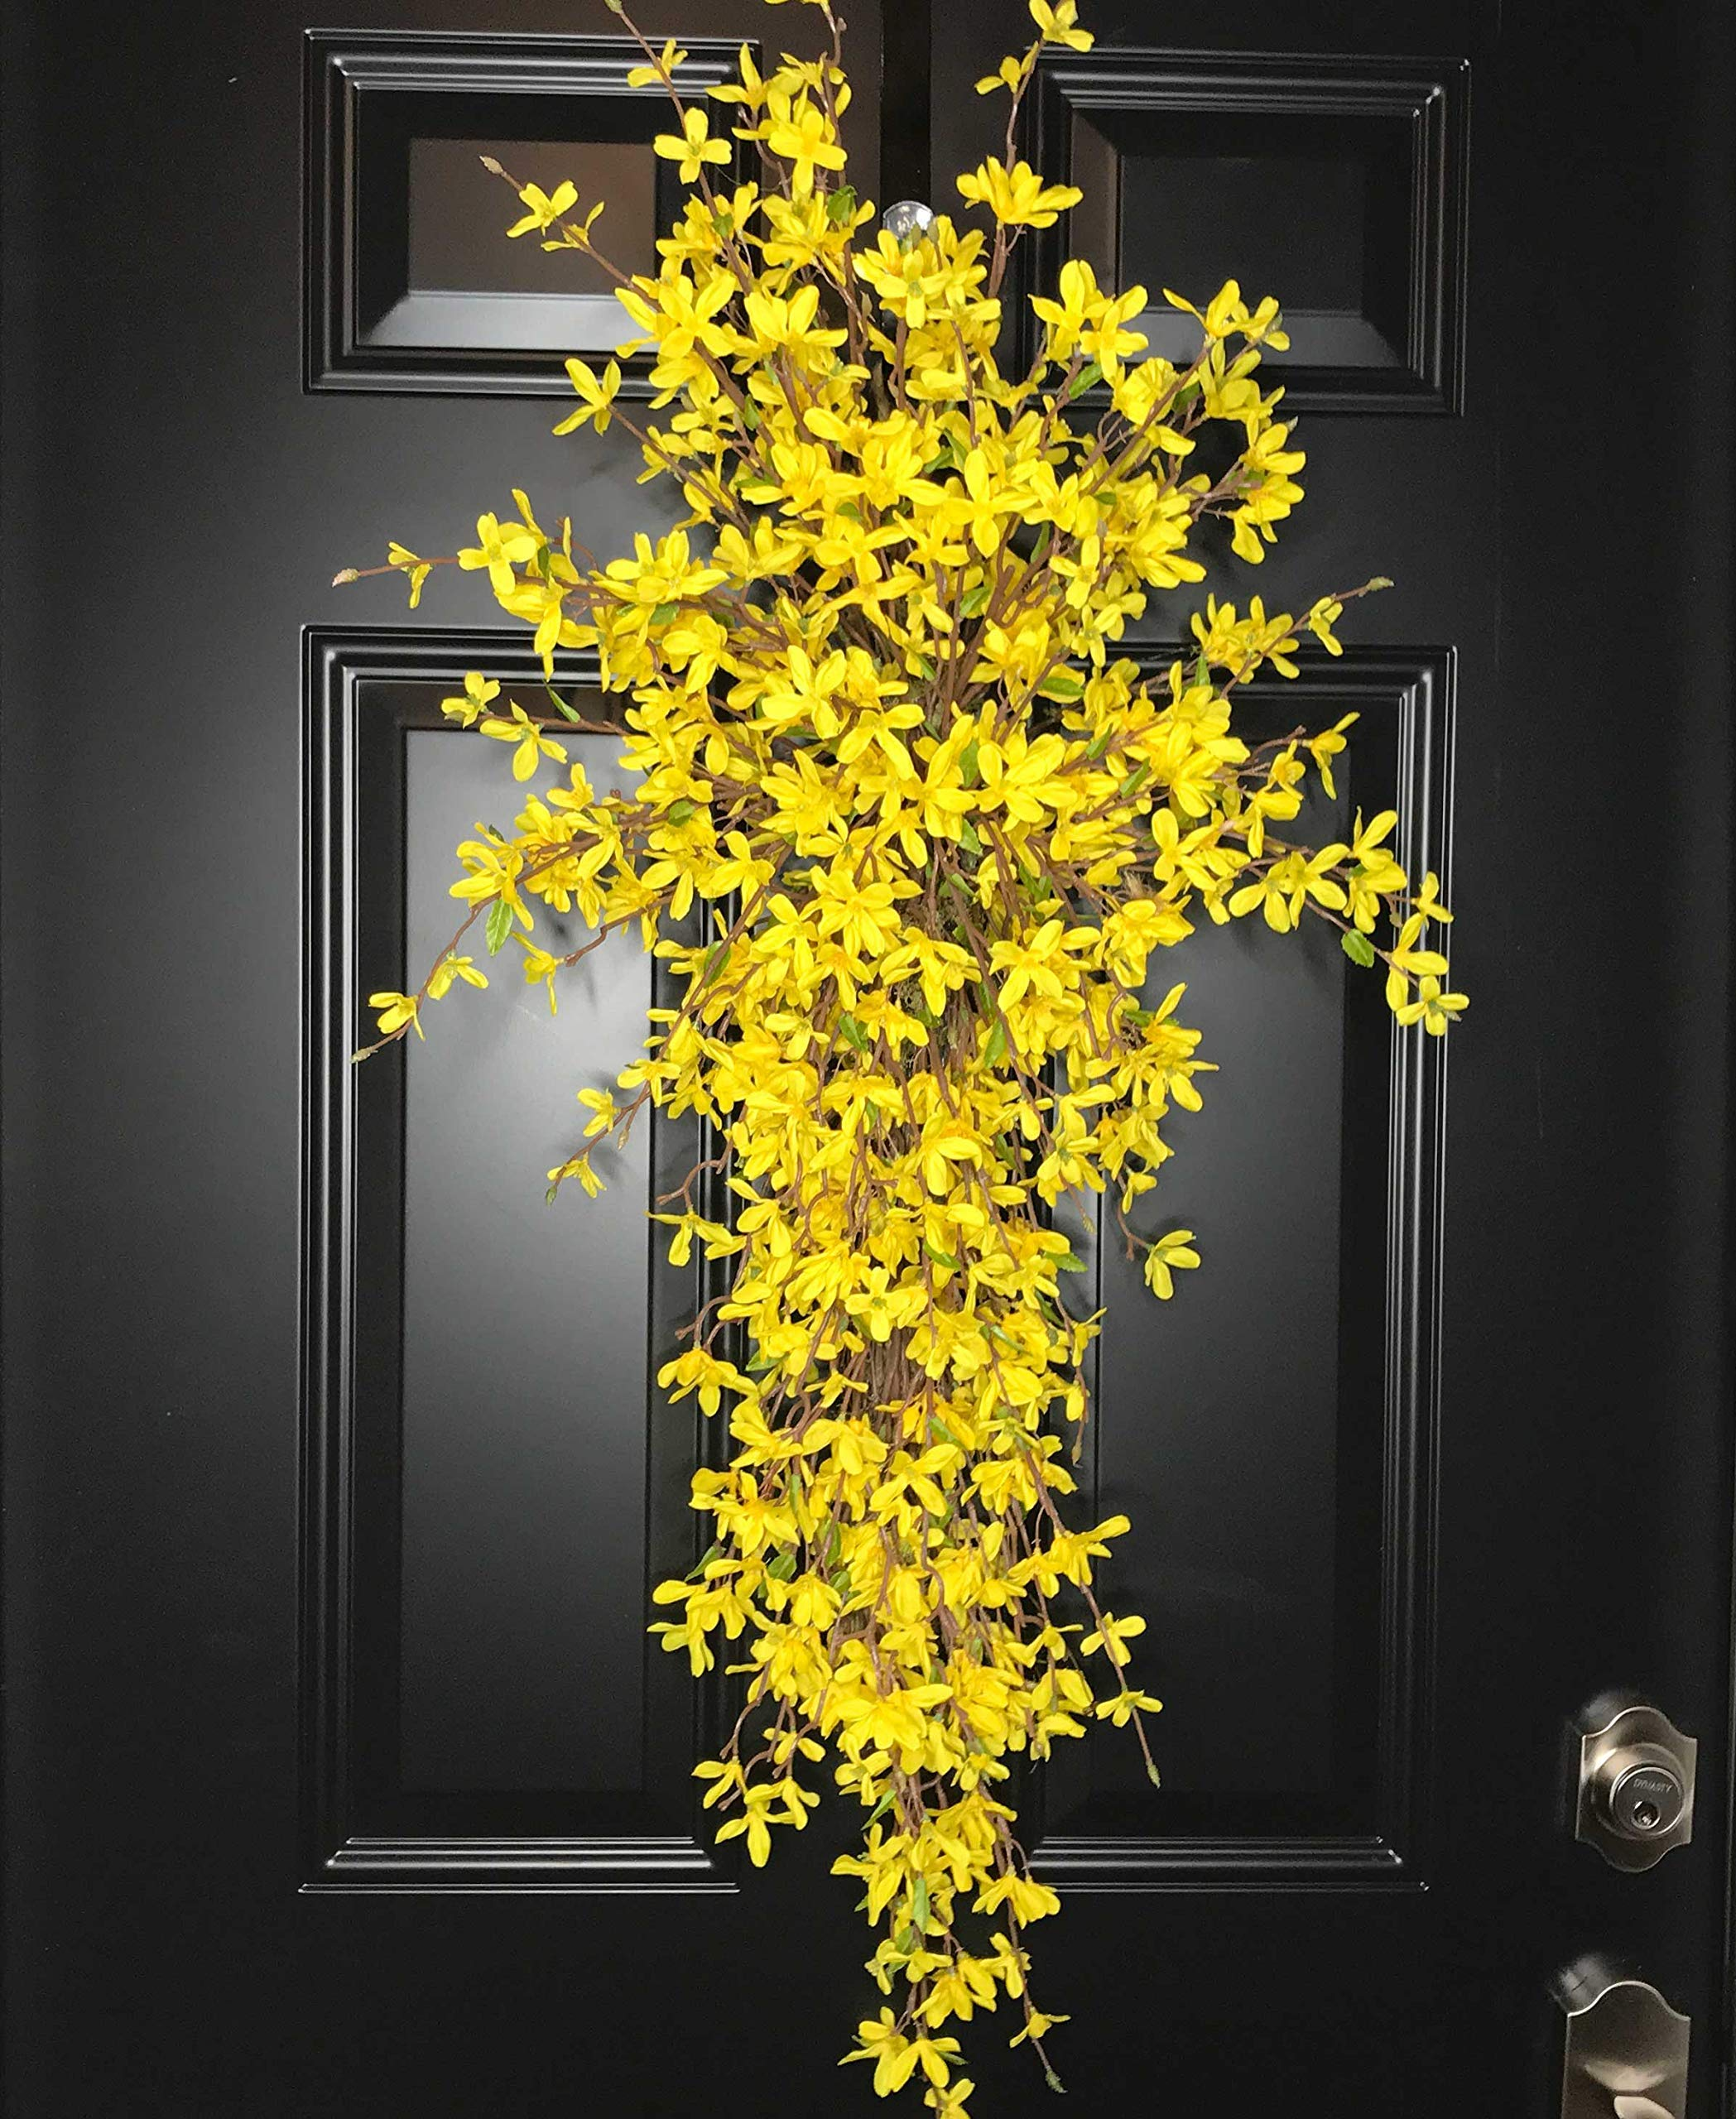 Extra Large Forsythia Floral Teardrop Swag Wreath for Front Door Porch Indoor Wall Farmhouse Decor Spring Springtime Summer Summertime Mother's Day Easter, Handmade, Yellow, 3 Sizes-42'', 36'', 30'' L by Wreath and Vine, LLC (Image #1)